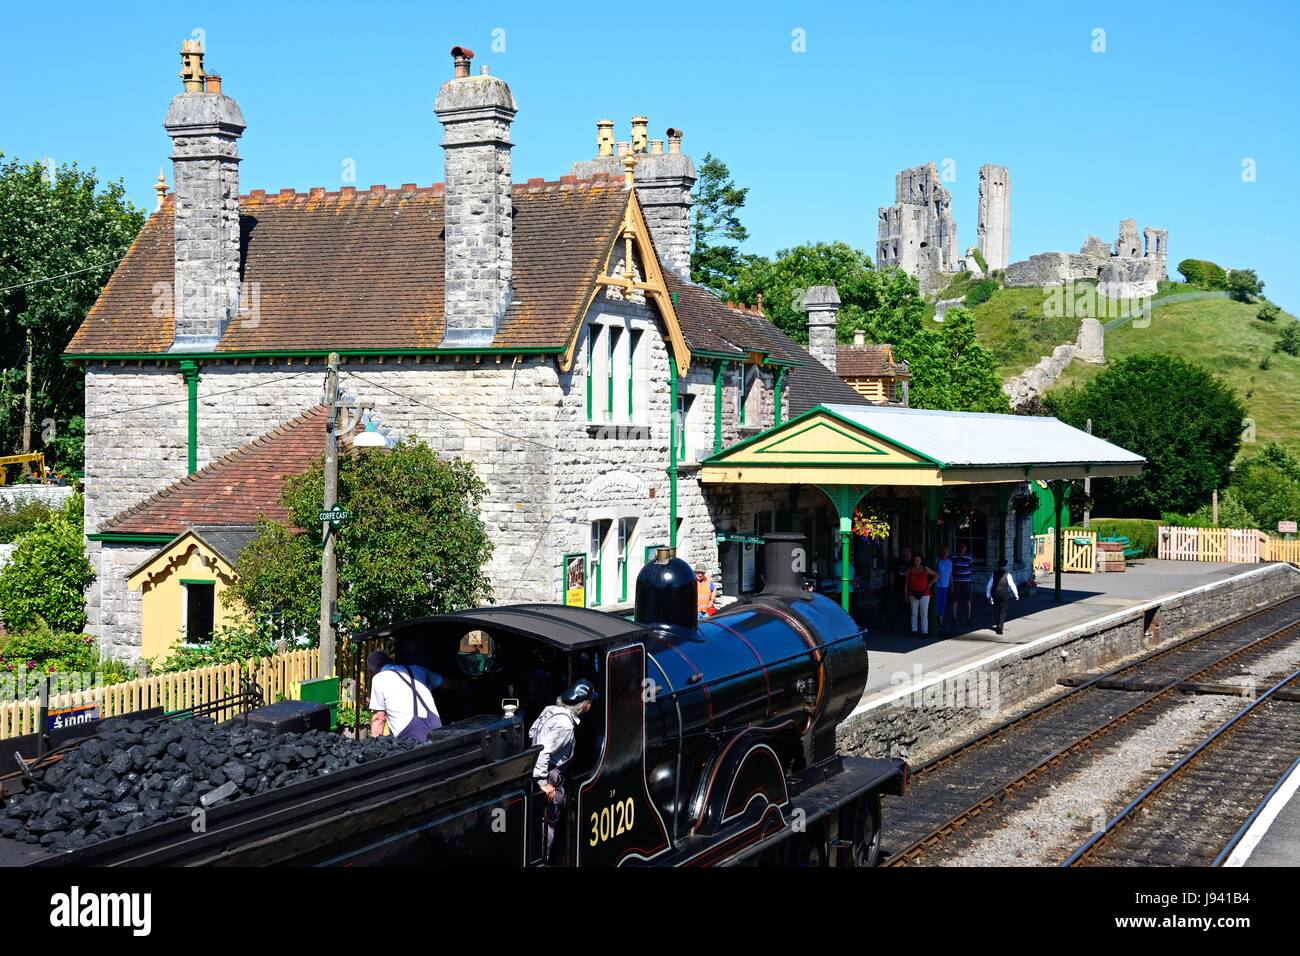 LSWR T9 Class 4-4-0 steam train entering the railway station with the castle to the rear, Corfe, Dorset, England, - Stock Image